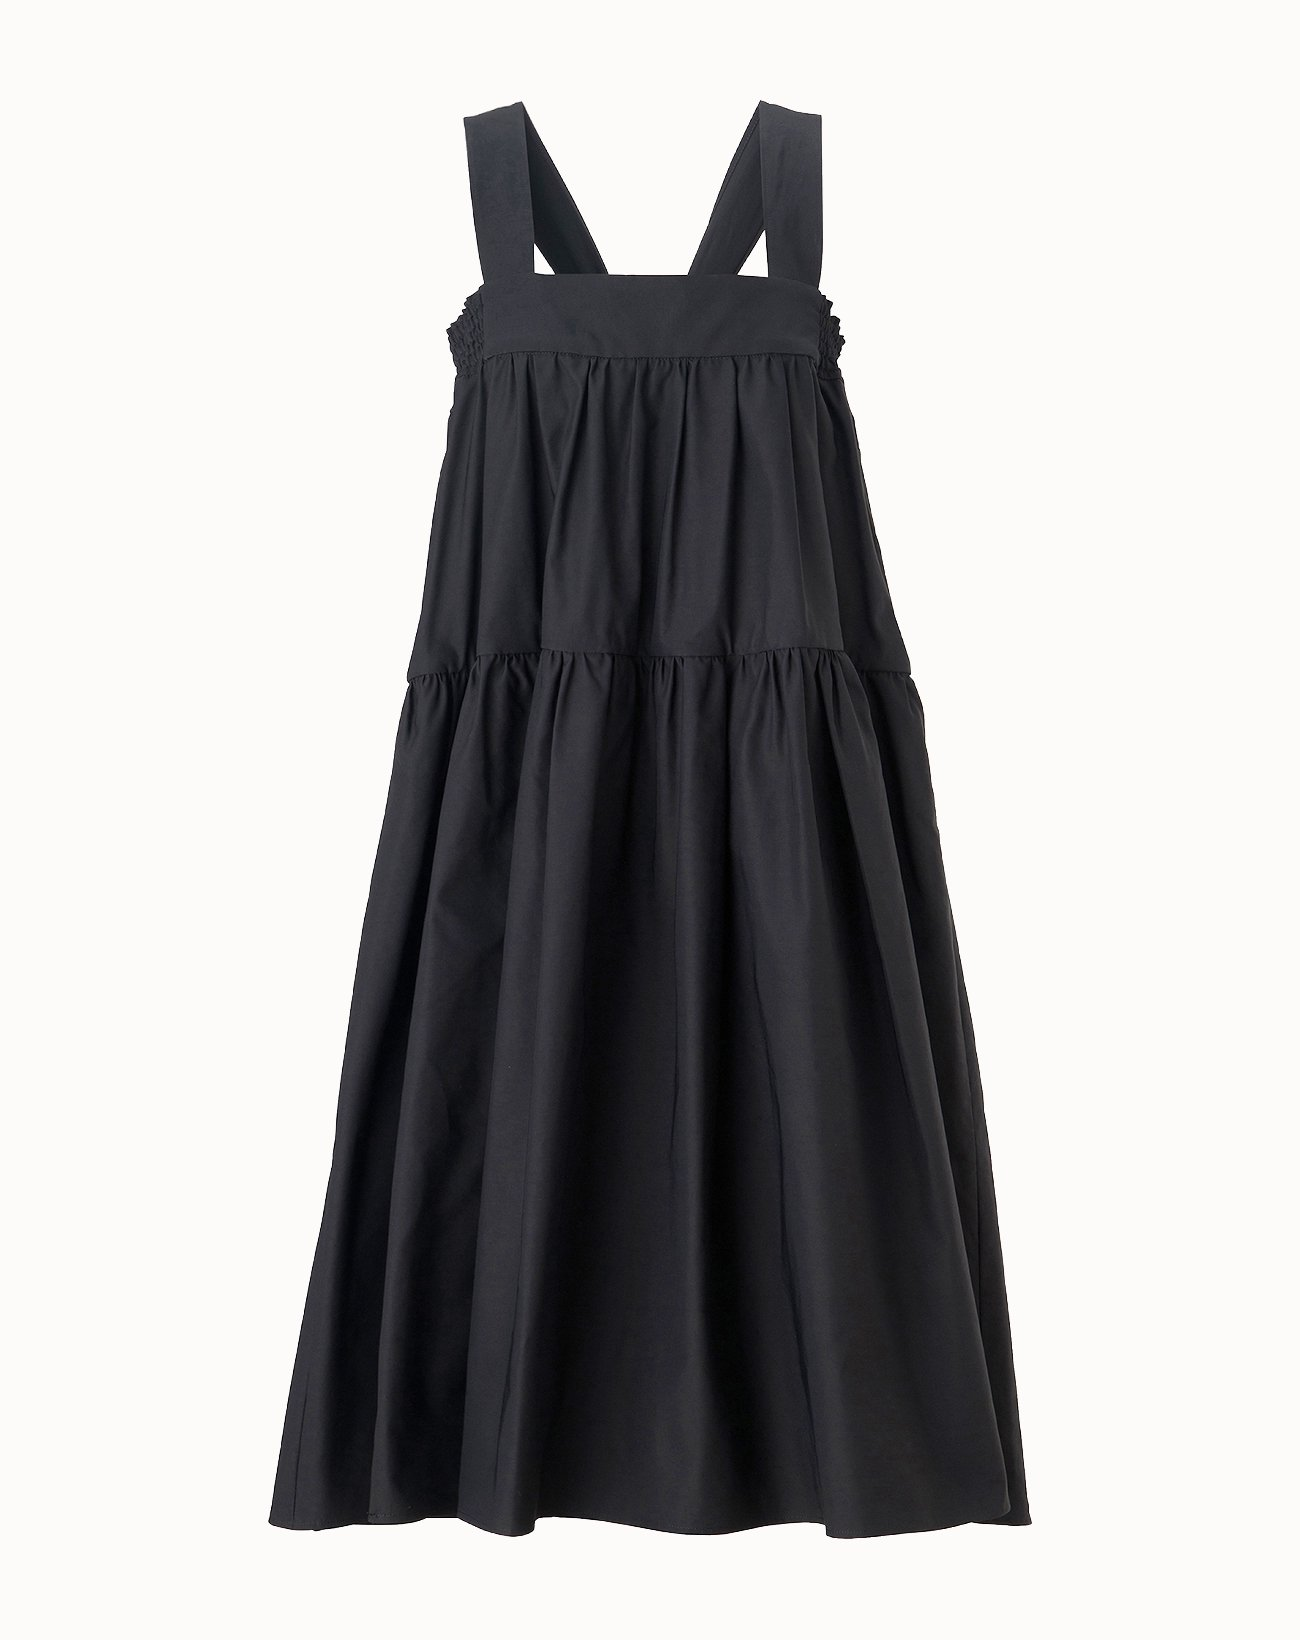 leur logette - Vintage Twill Dress - Black